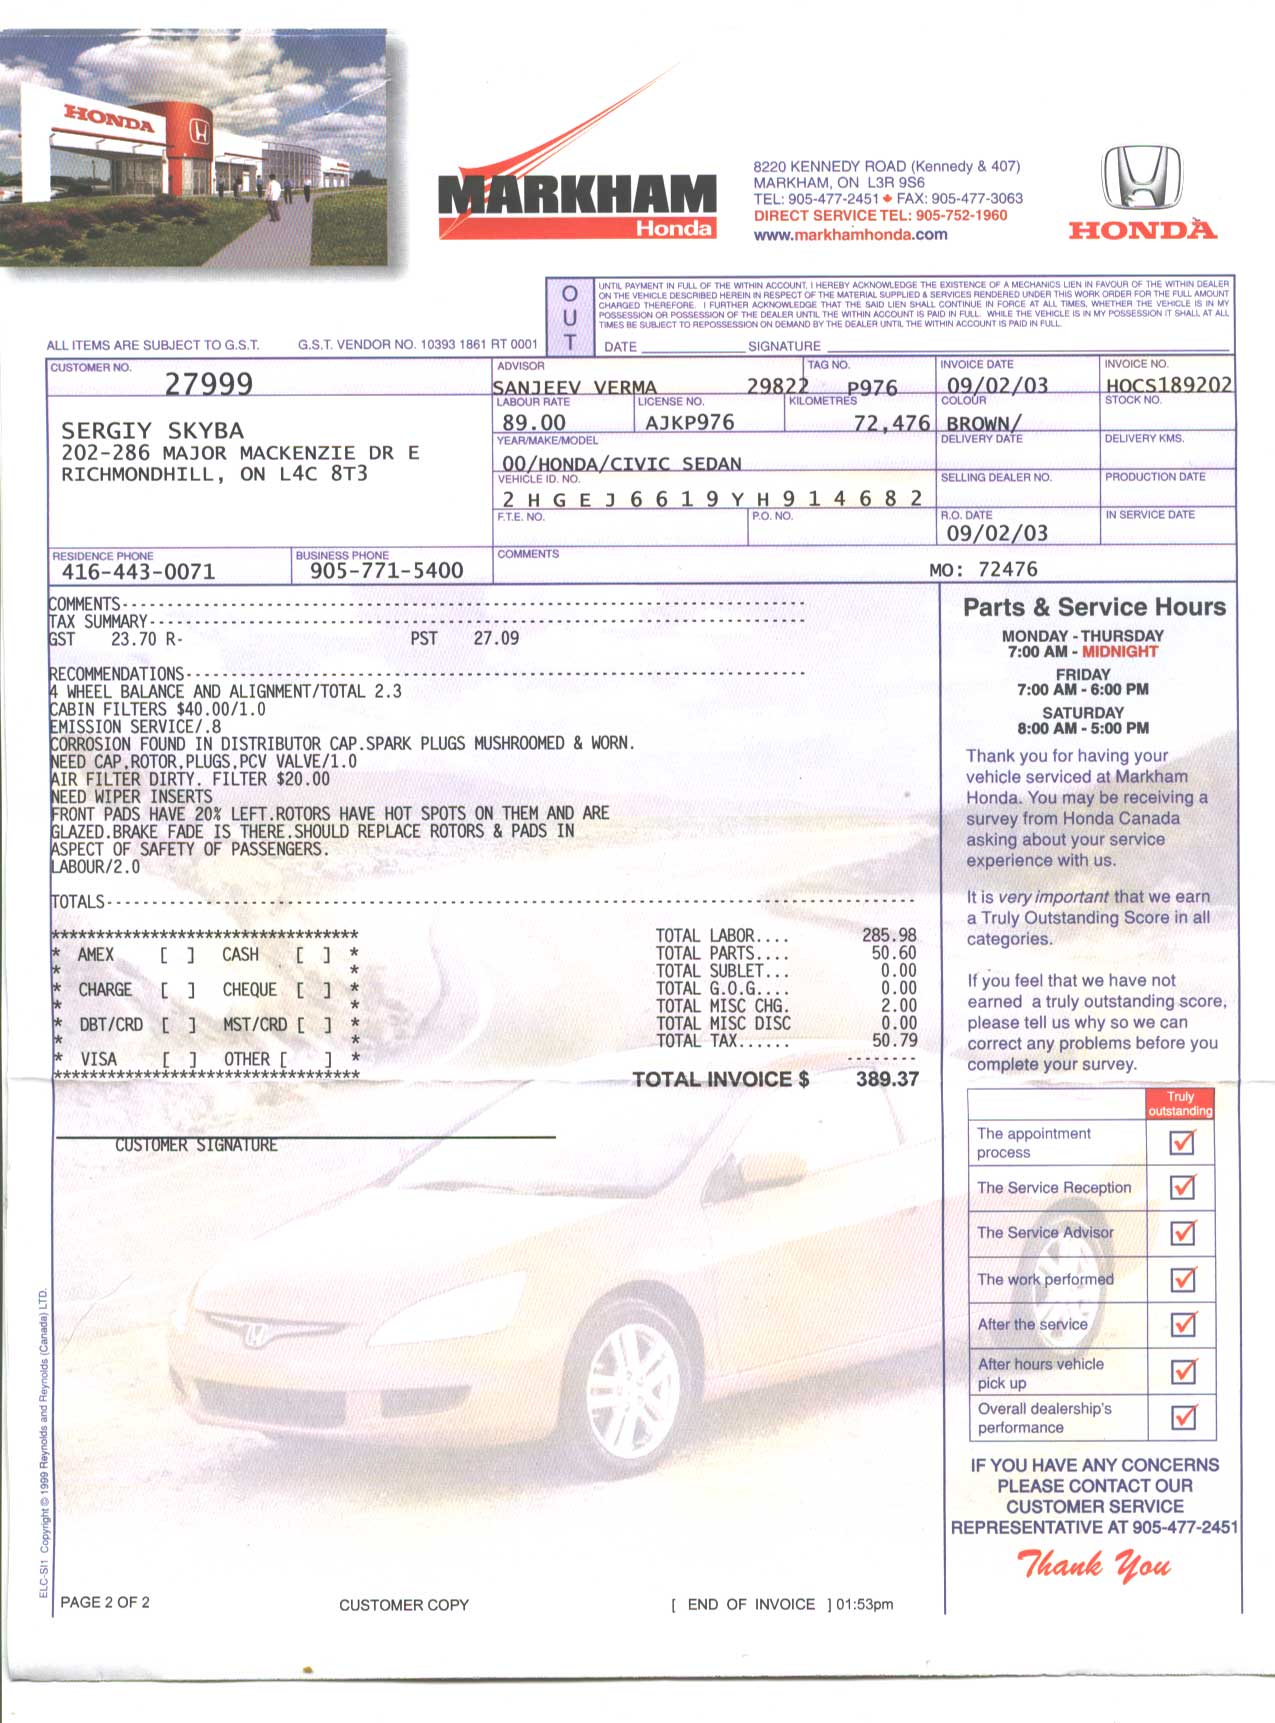 My Honda Experience Markham Honda Service Invoice - What is a car invoice for service business